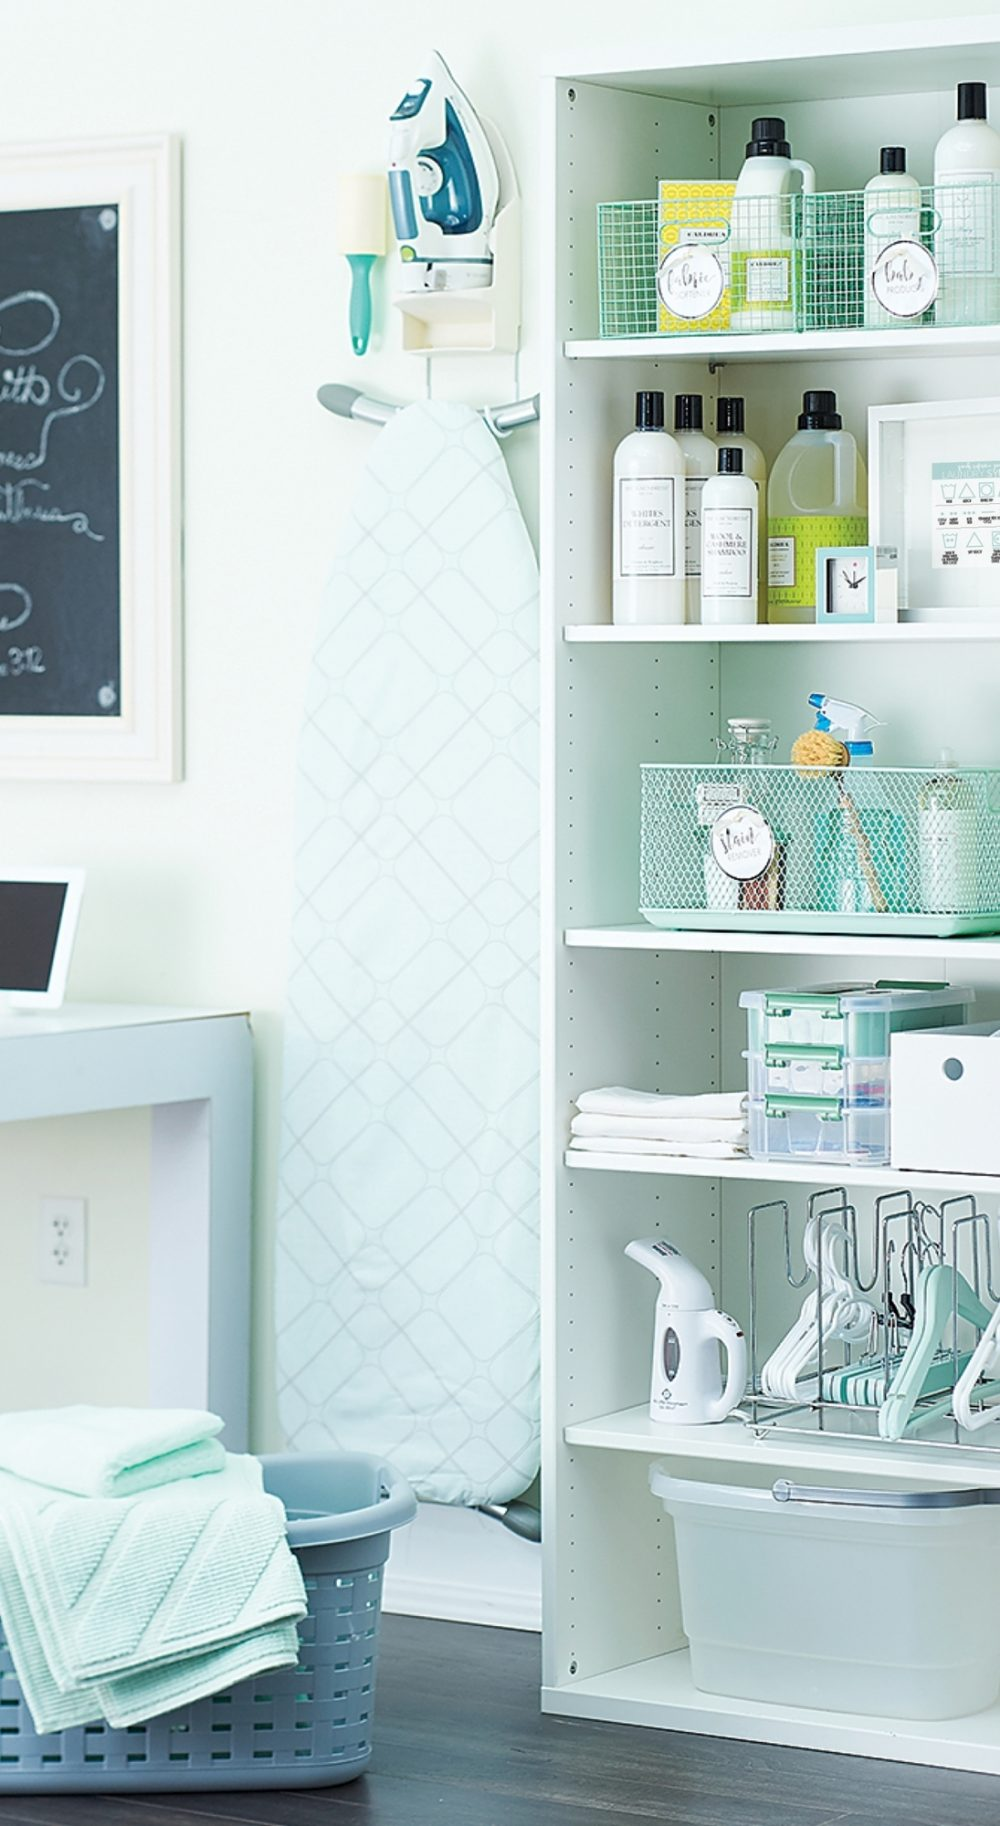 Presoak to press, doing laundry is hard work. Clean up this dirty job with a pretty, well-organized space that puts everything you need right where you need it: at your fingertips.